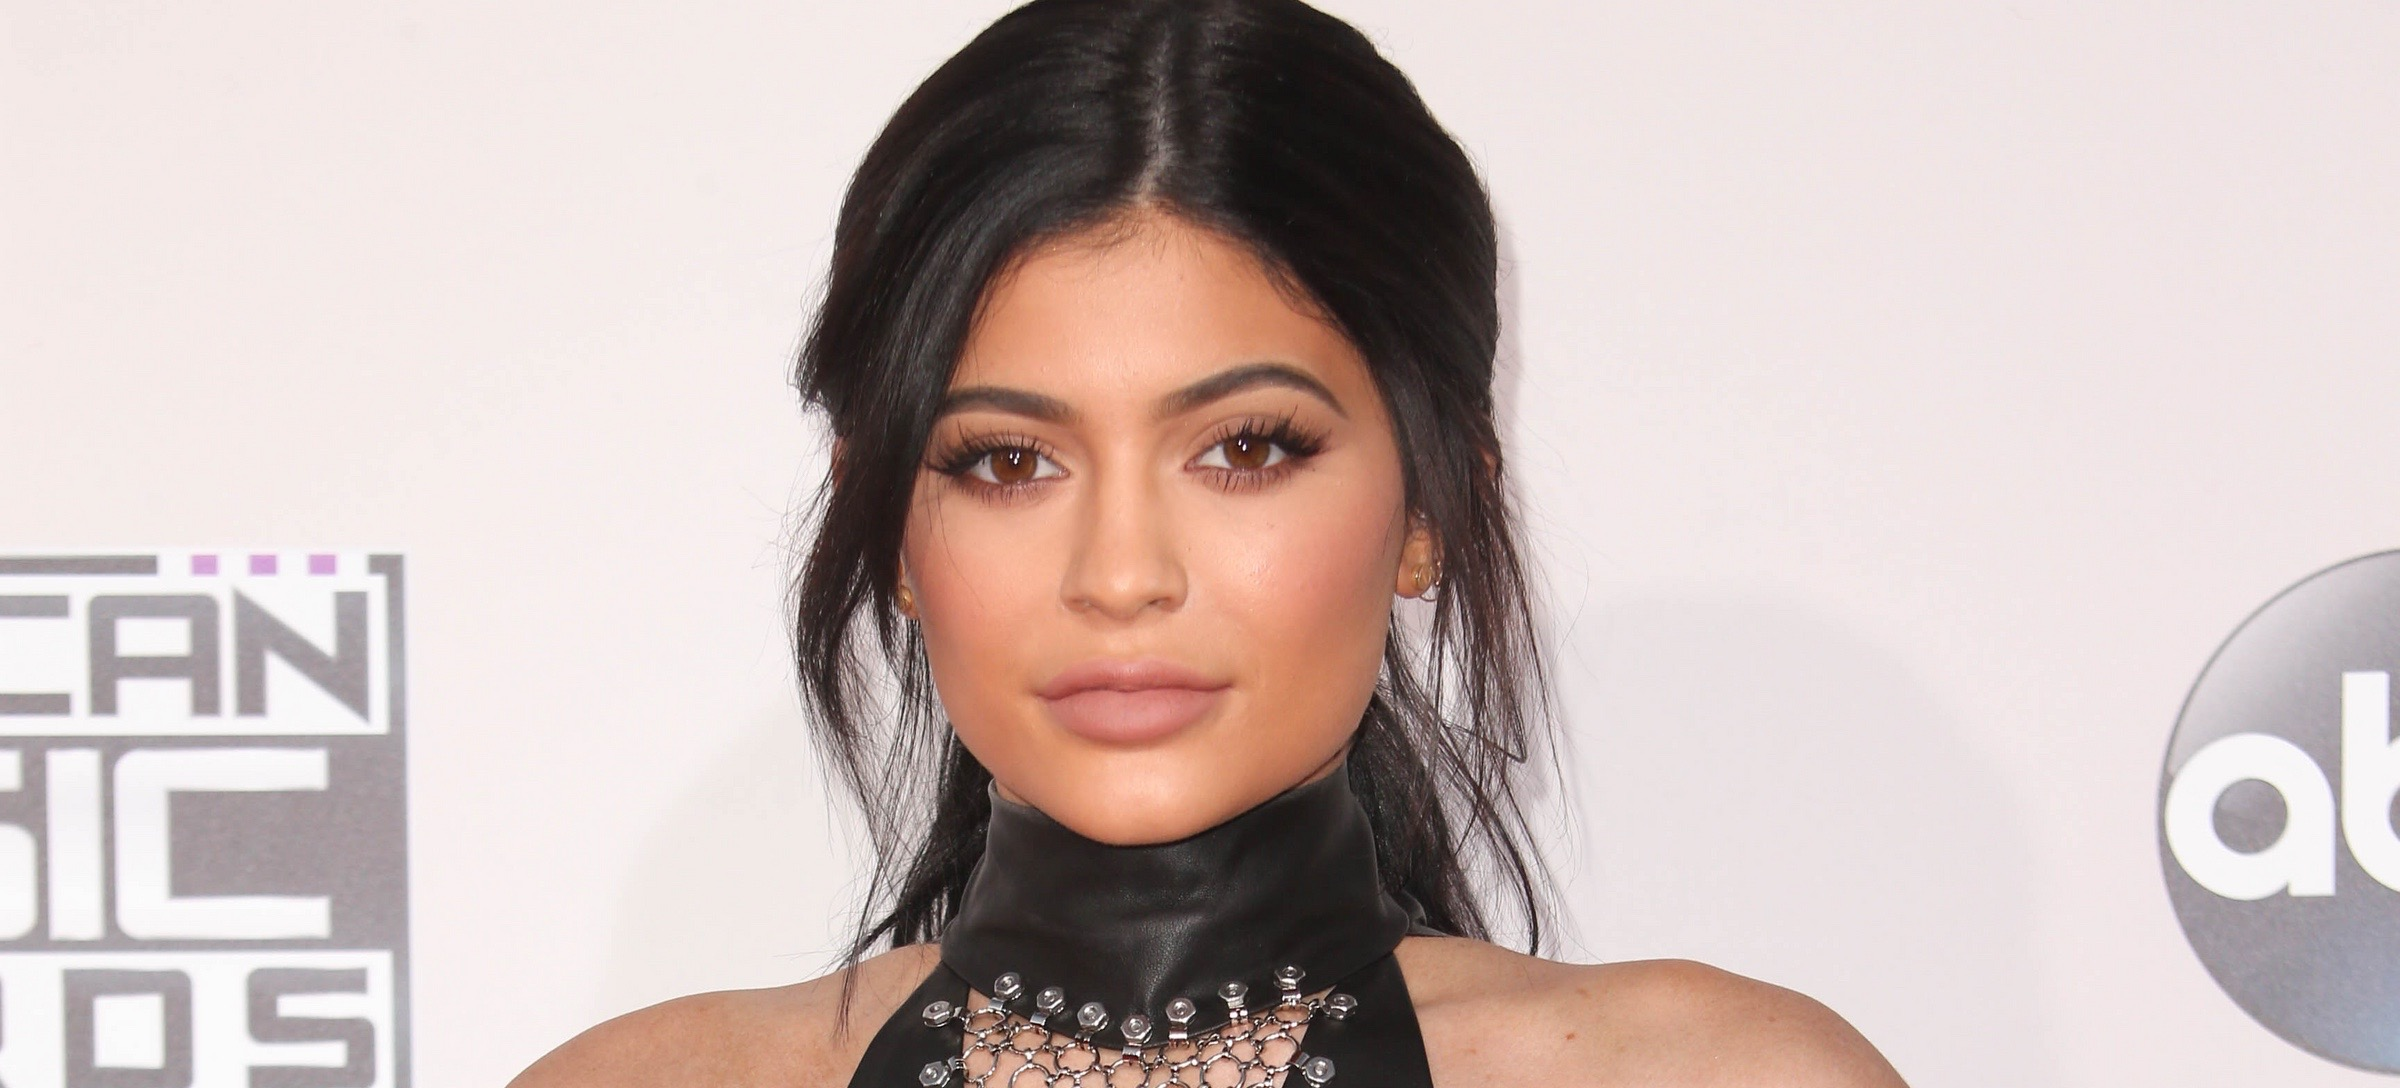 See Kylie Jenner's Daily Makeup Routine